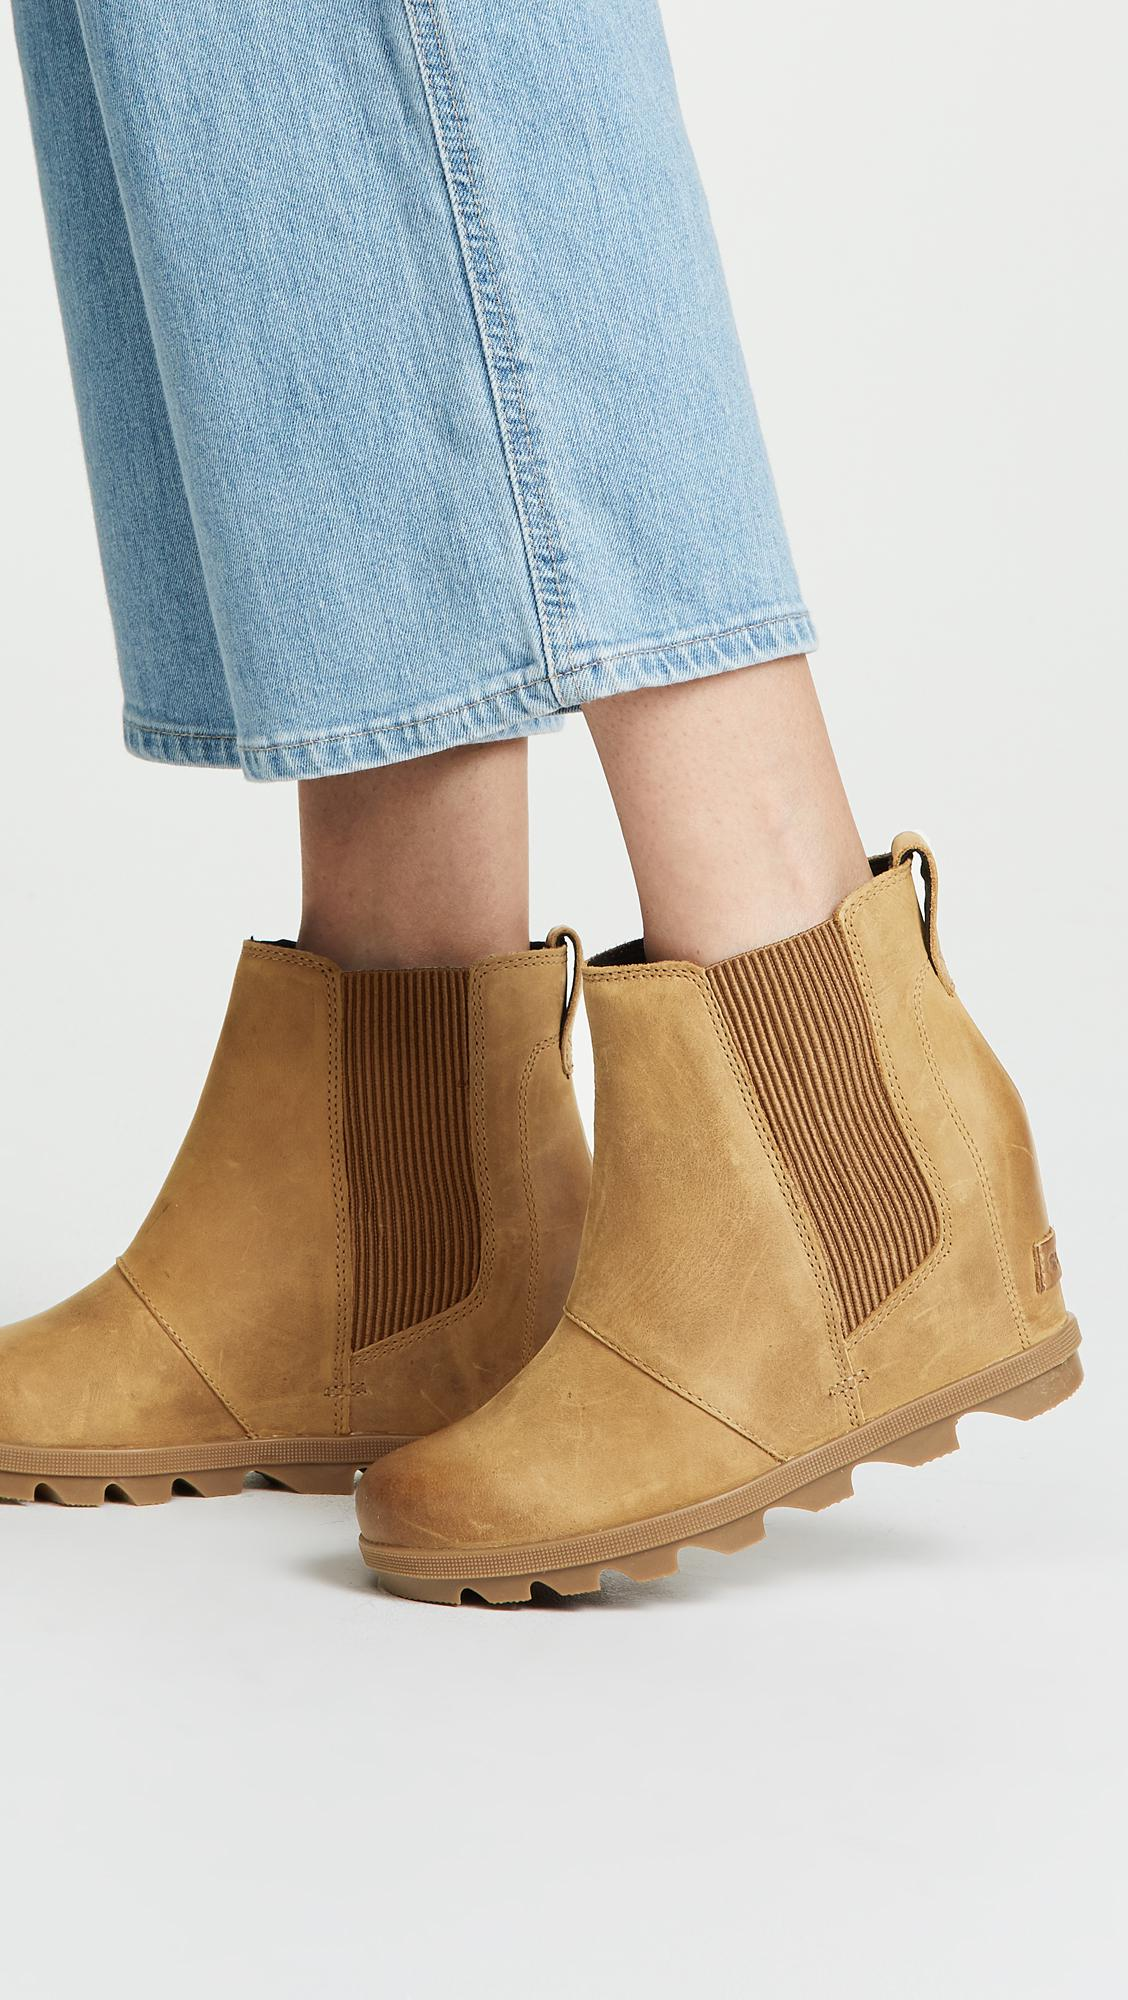 e491a544e98 Lyst - Sorel Joan Of Arctic Wedge Ii Chelsea Boots in Brown